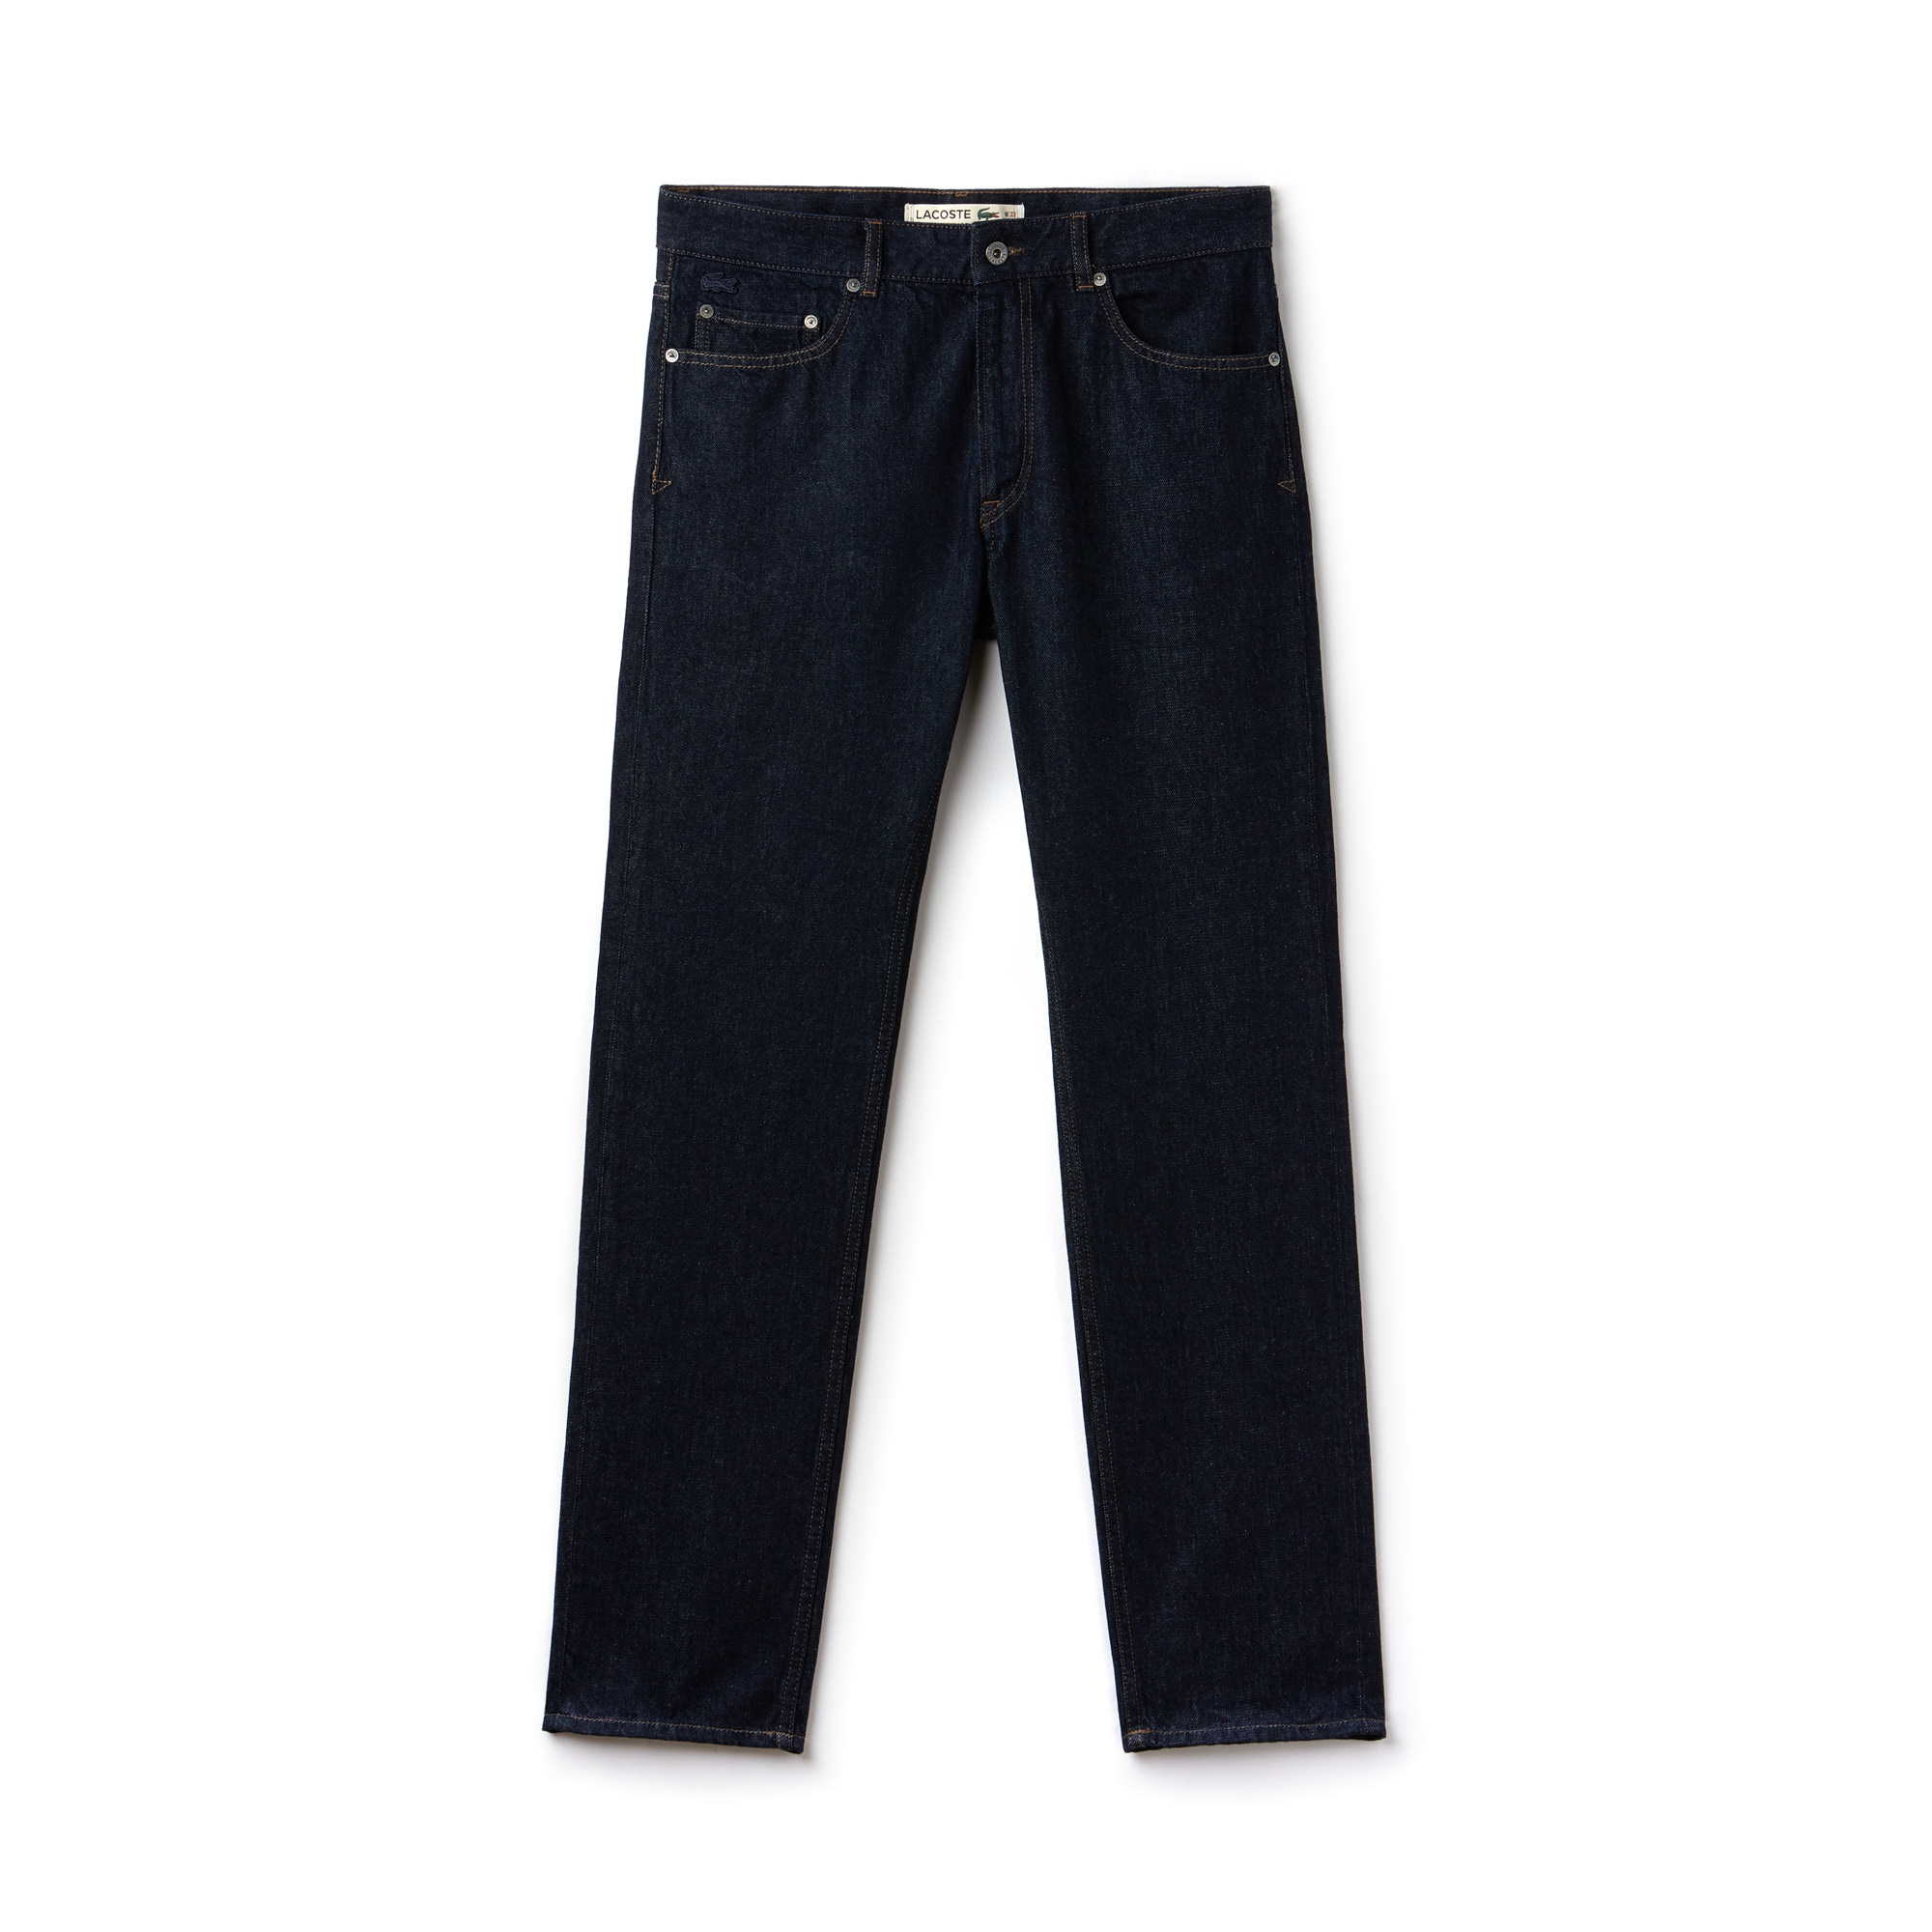 Jean 5 poches regular fit en denim de coton